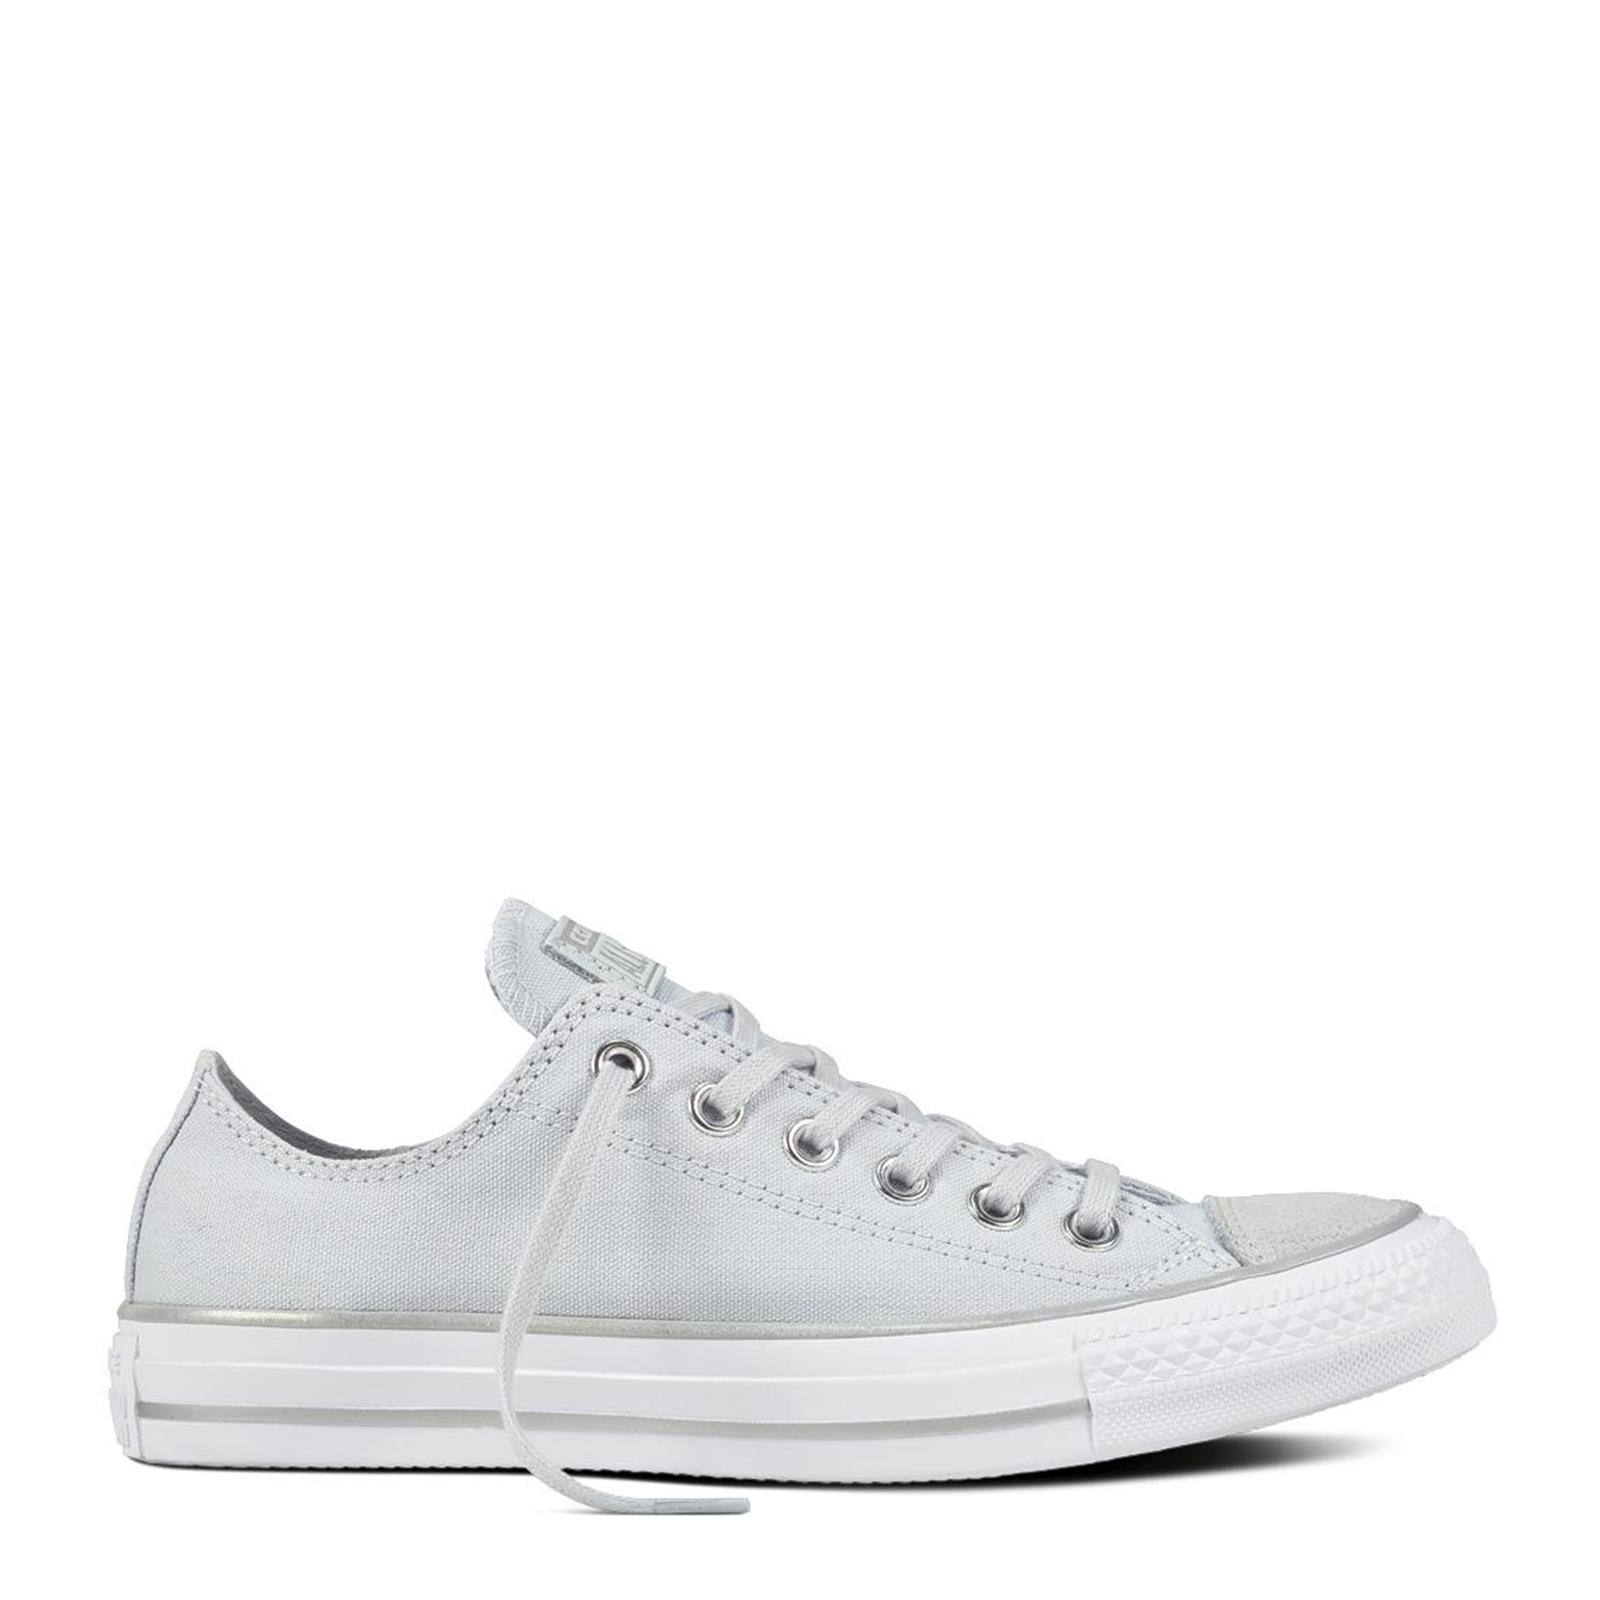 5d1fb99c3d3d  SALE  CONVERSE CHUCK TAYLOR ALL STAR - OX - PURE PLATINUM SILVER